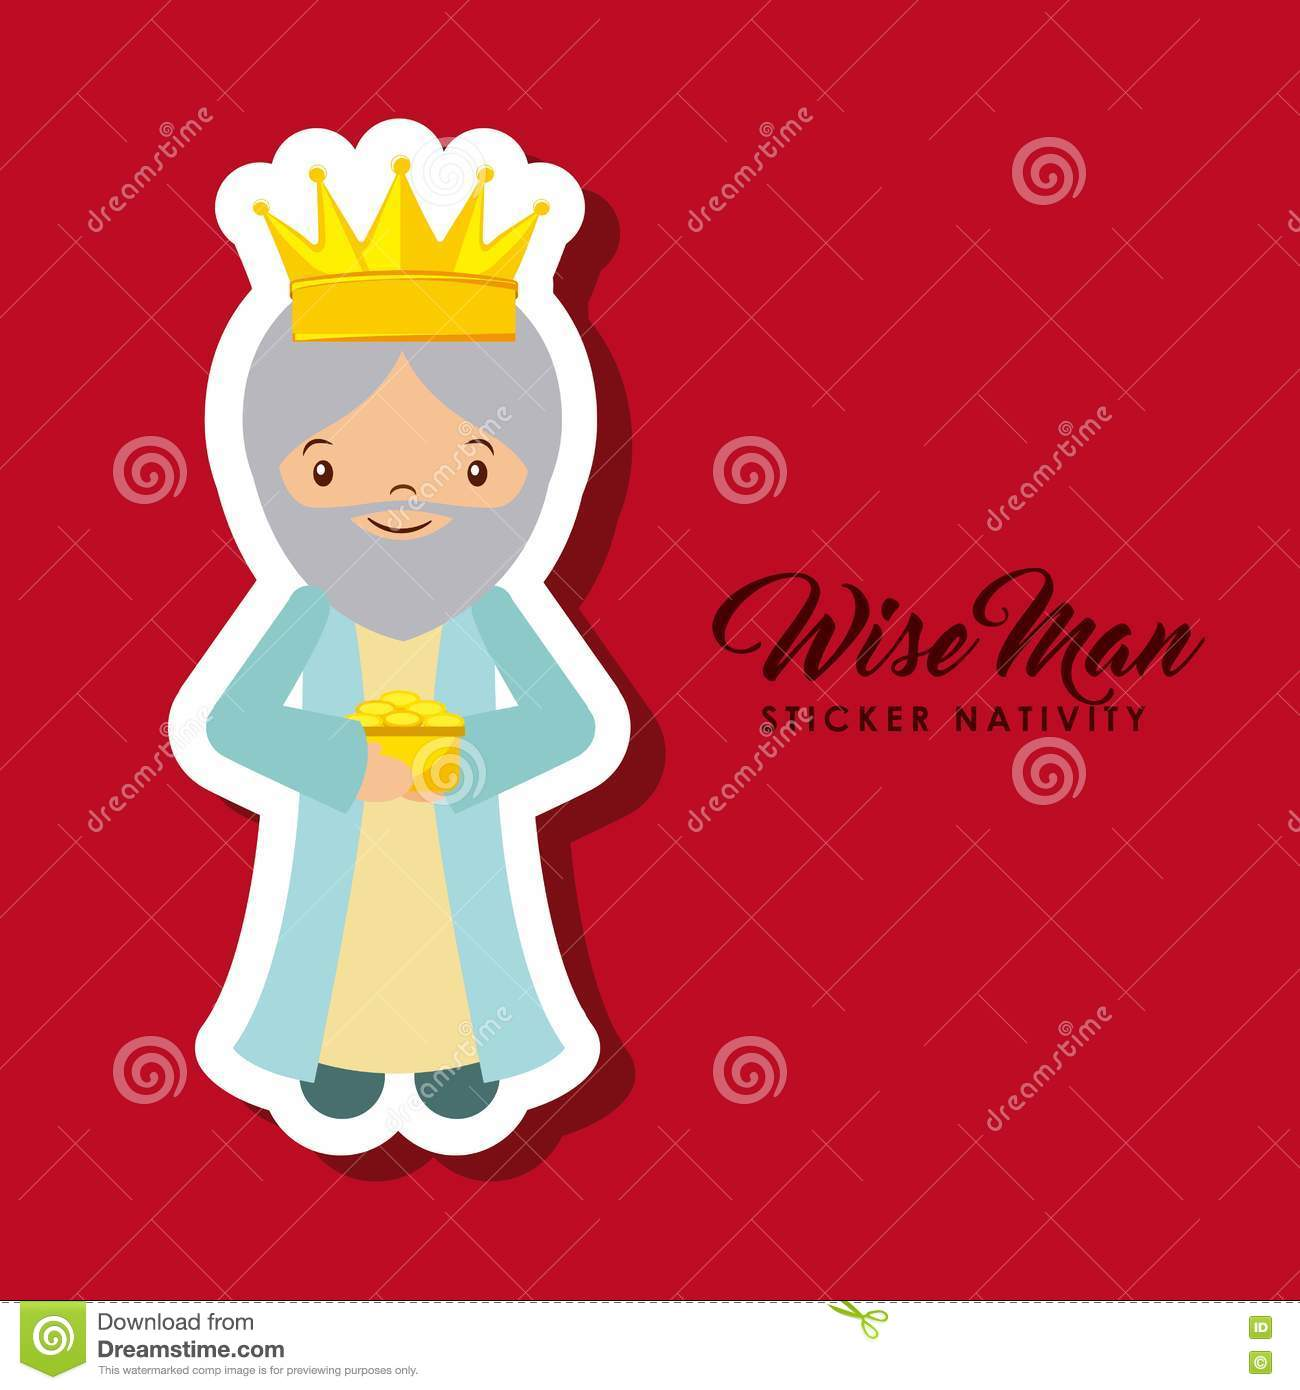 Wise Man Sticker Nativity Stock Vector.